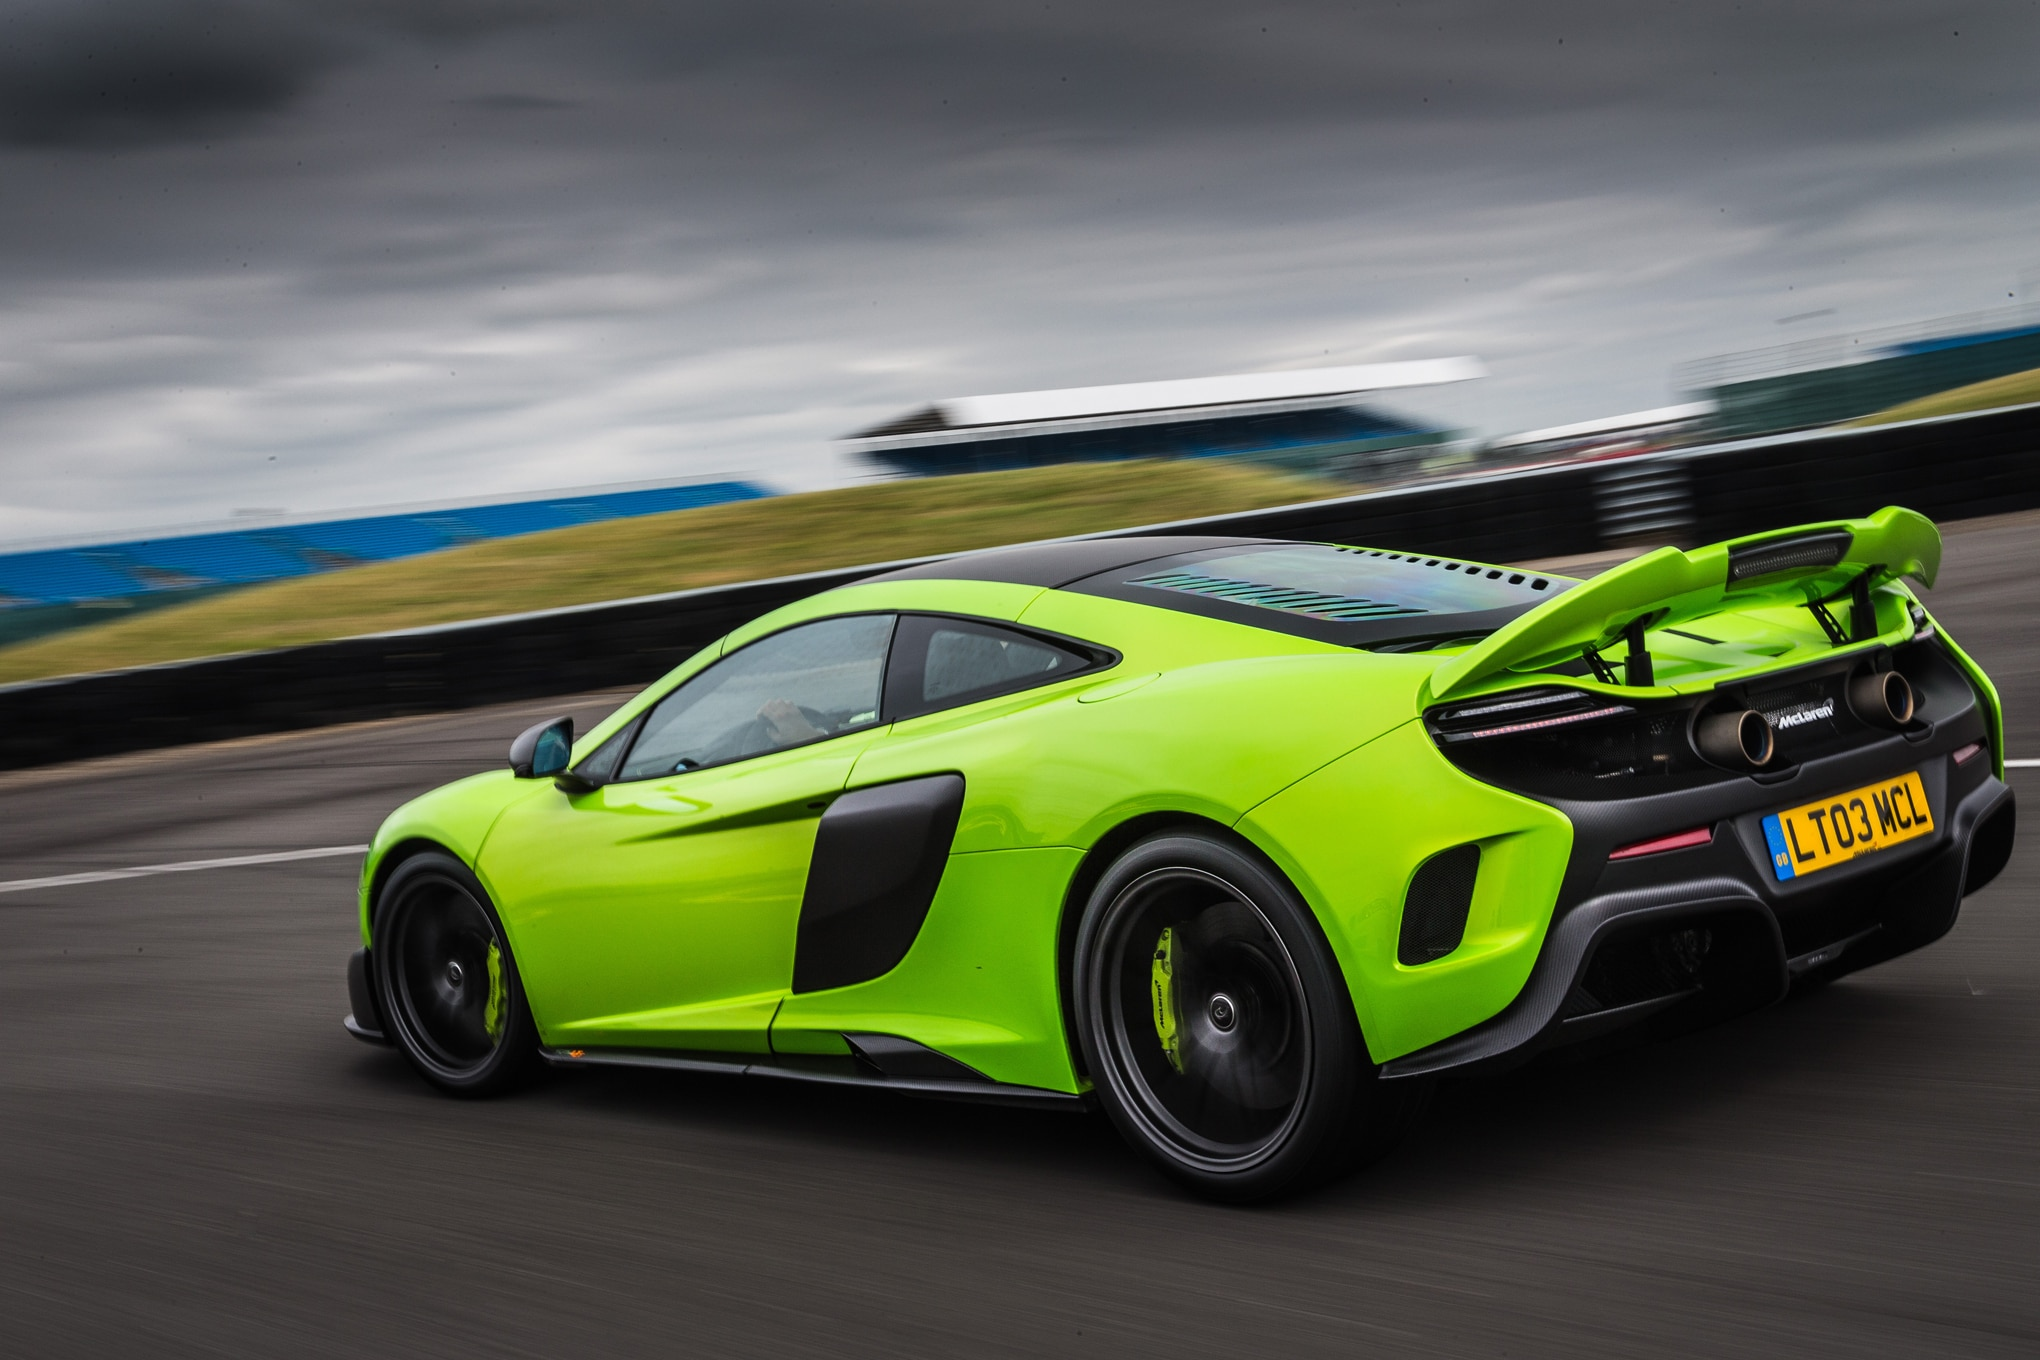 http://st.automobilemag.com/uploads/sites/11/2015/07/2016-Mclaren-675LT-rear-three-quarter-in-motion-02.jpg